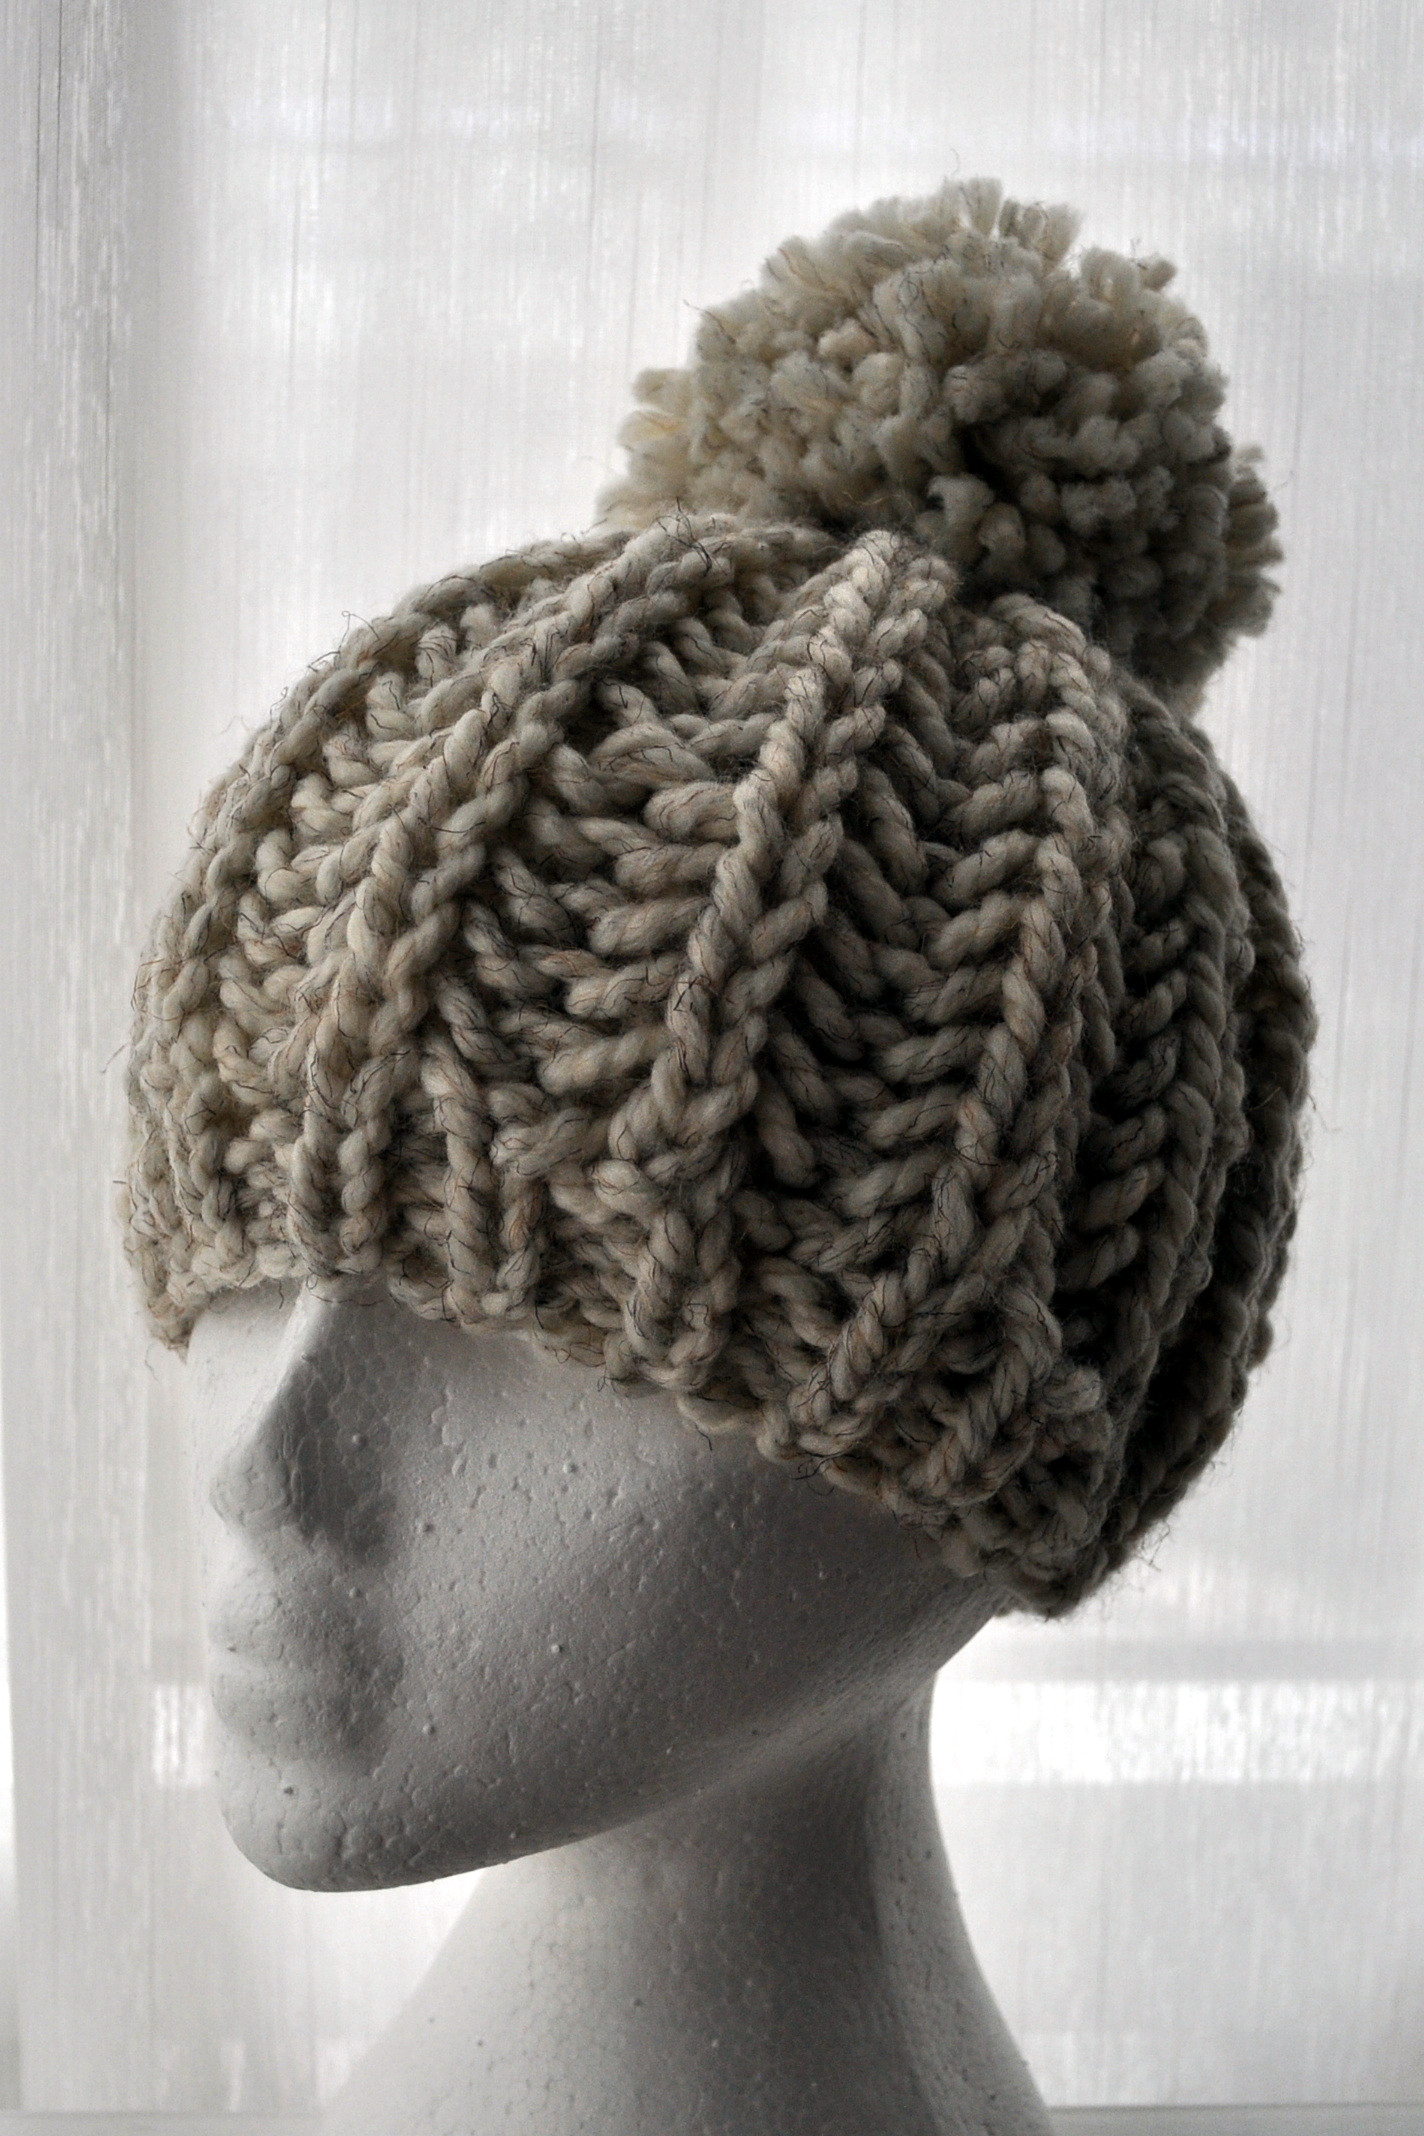 Awesome Free Pattern Knit Fisherman Ribbed Hipster Hat Free Chunky Knitting Patterns Of Brilliant 46 Ideas Free Chunky Knitting Patterns